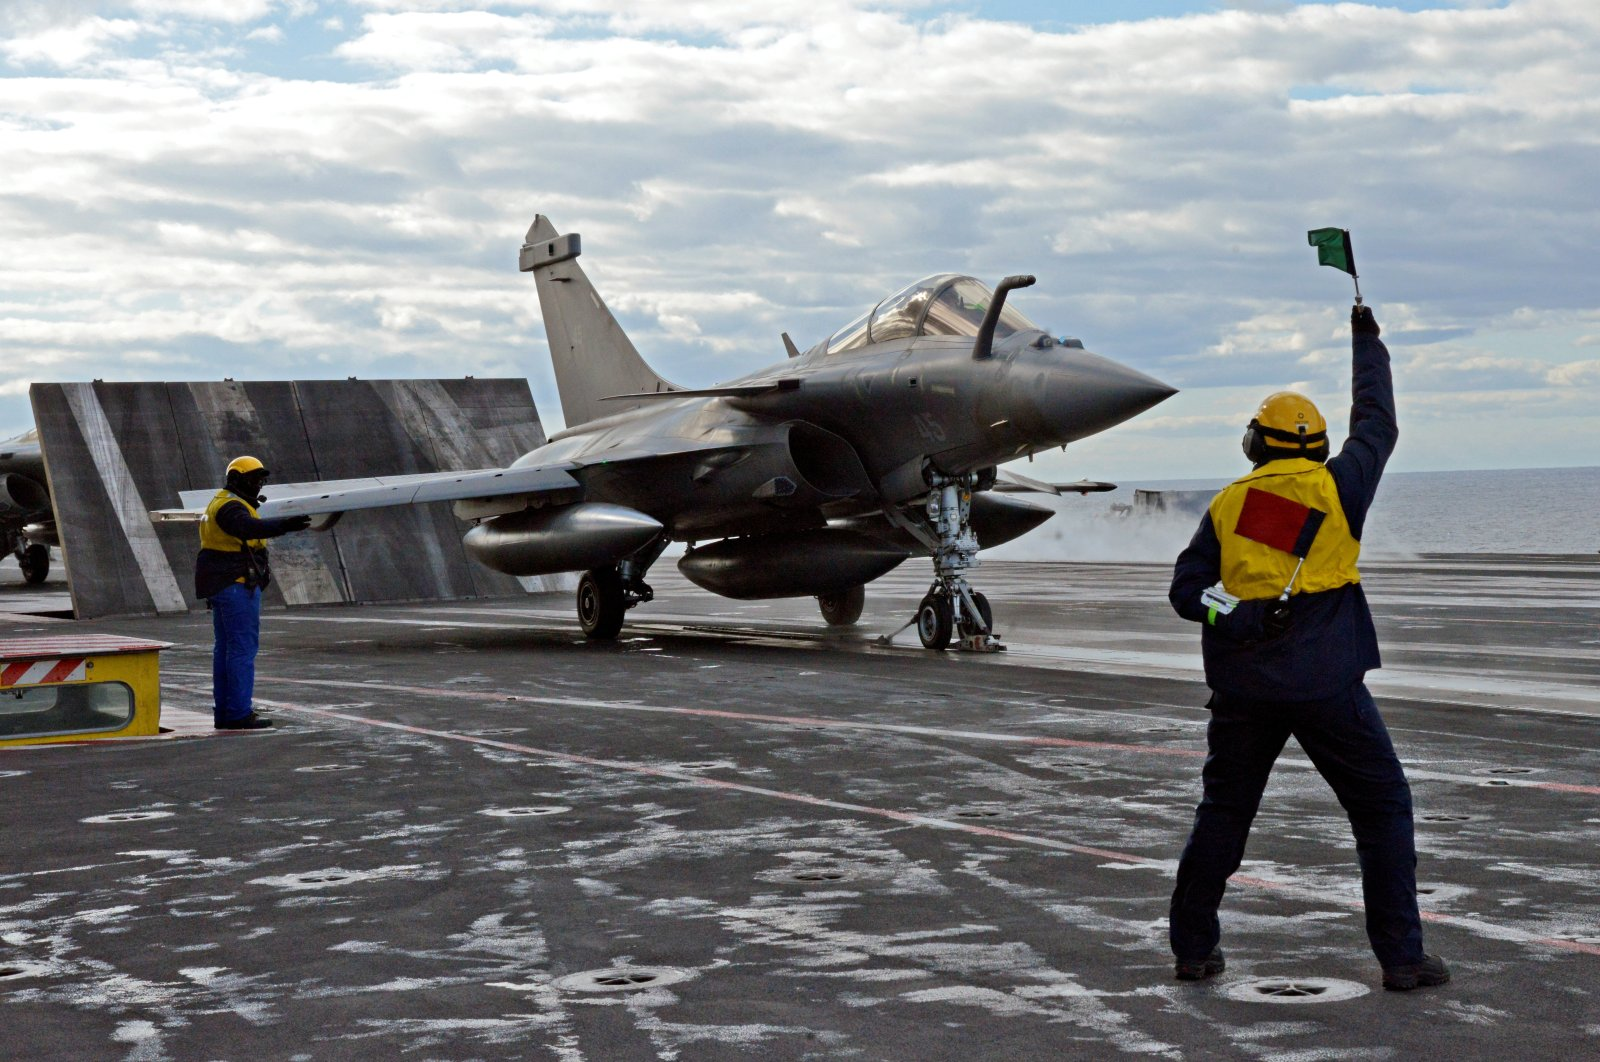 A French Rafale fighter jet is catapulted from the French aircraft carrier Charles de Gaulle, off the eastern coast of Cyprus in the Mediterranean Sea, Feb. 10, 2020. (AFP Photo)